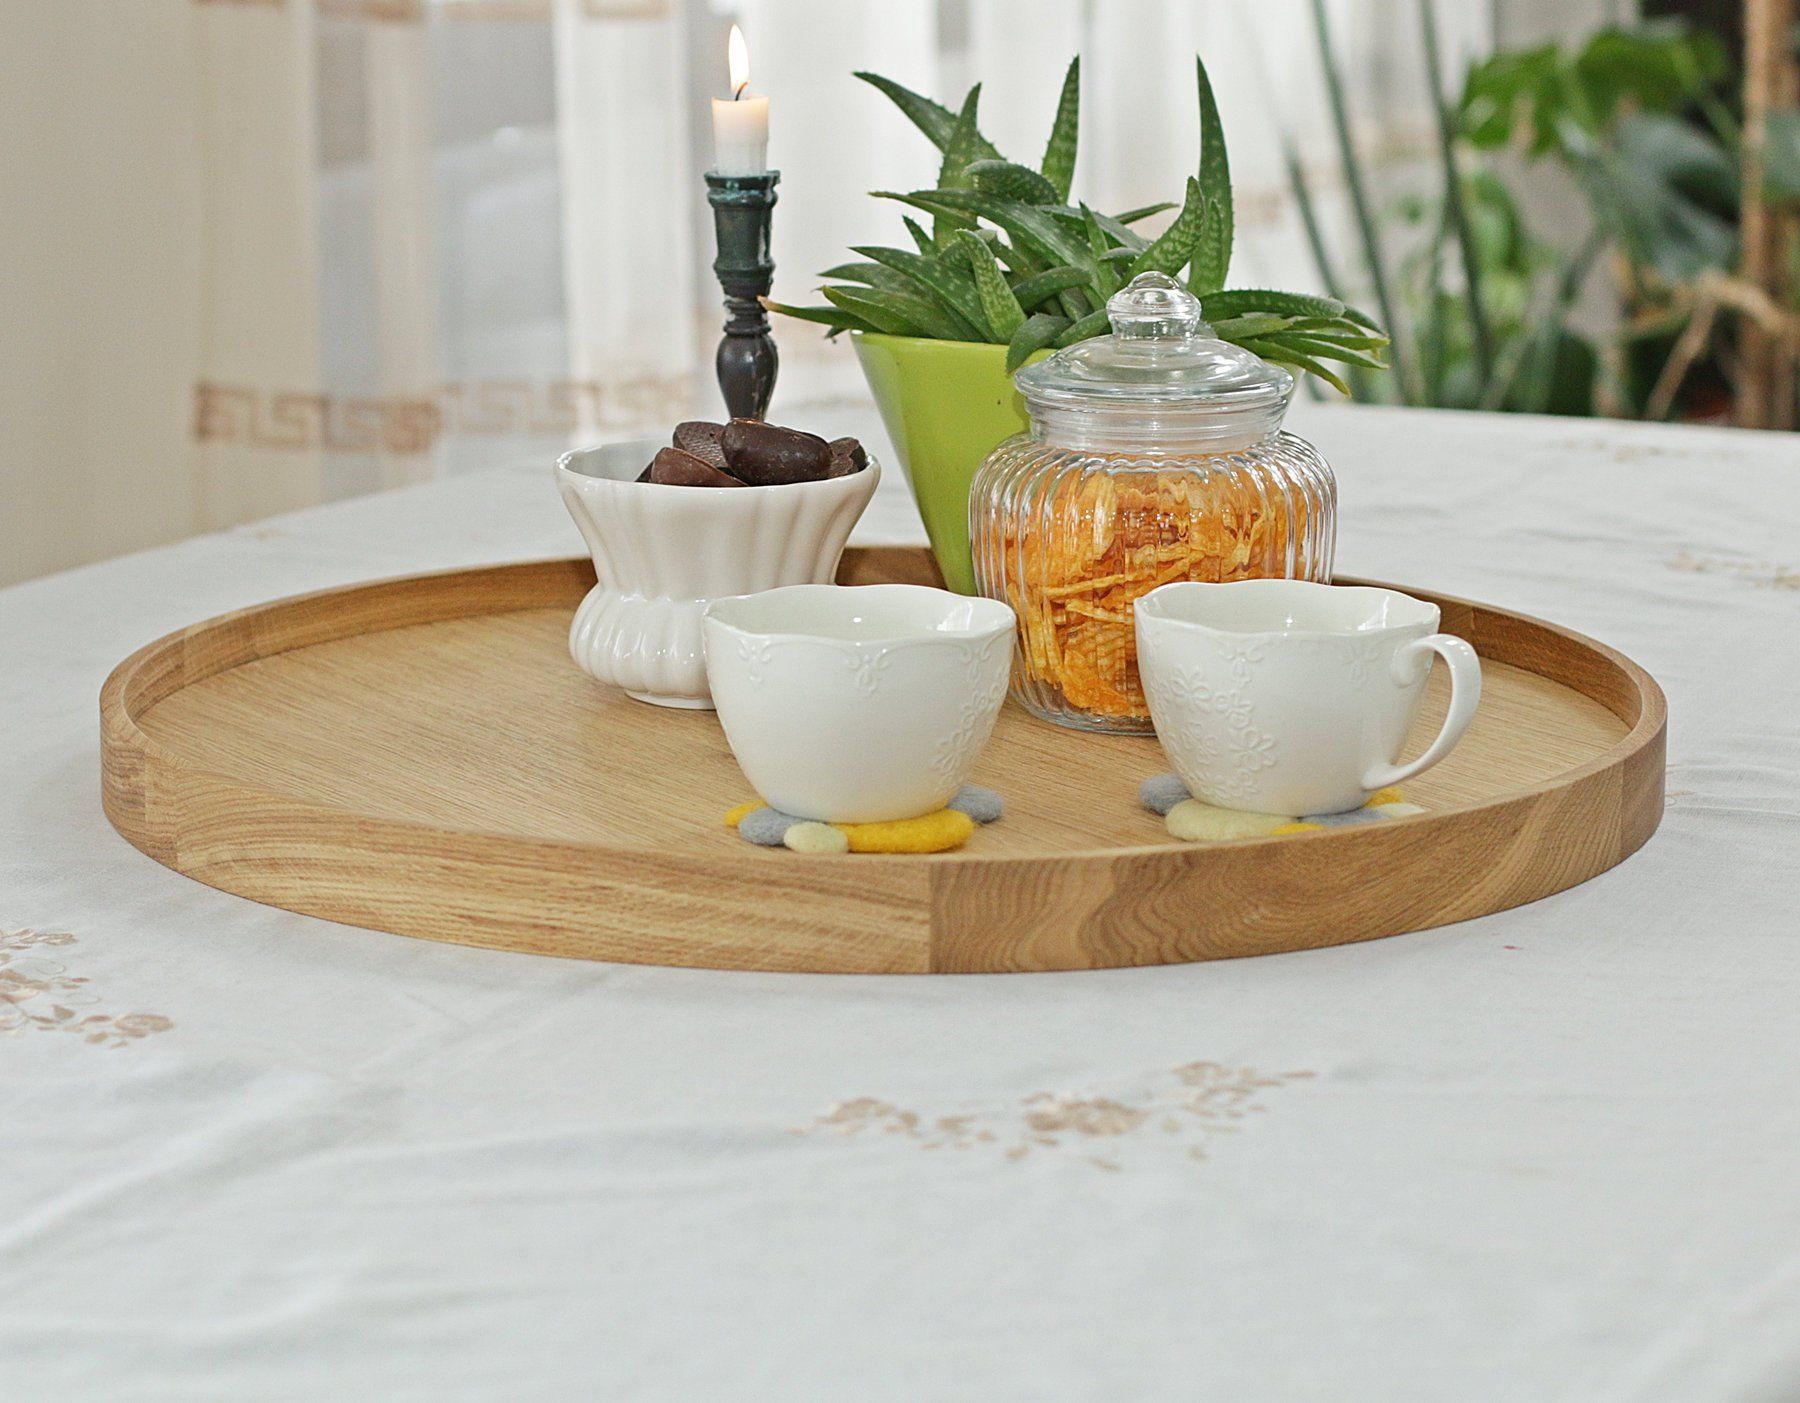 Miraculous Large Oak Wood Tray Oak Tray Tray Place Mat Coaster Unemploymentrelief Wooden Chair Designs For Living Room Unemploymentrelieforg